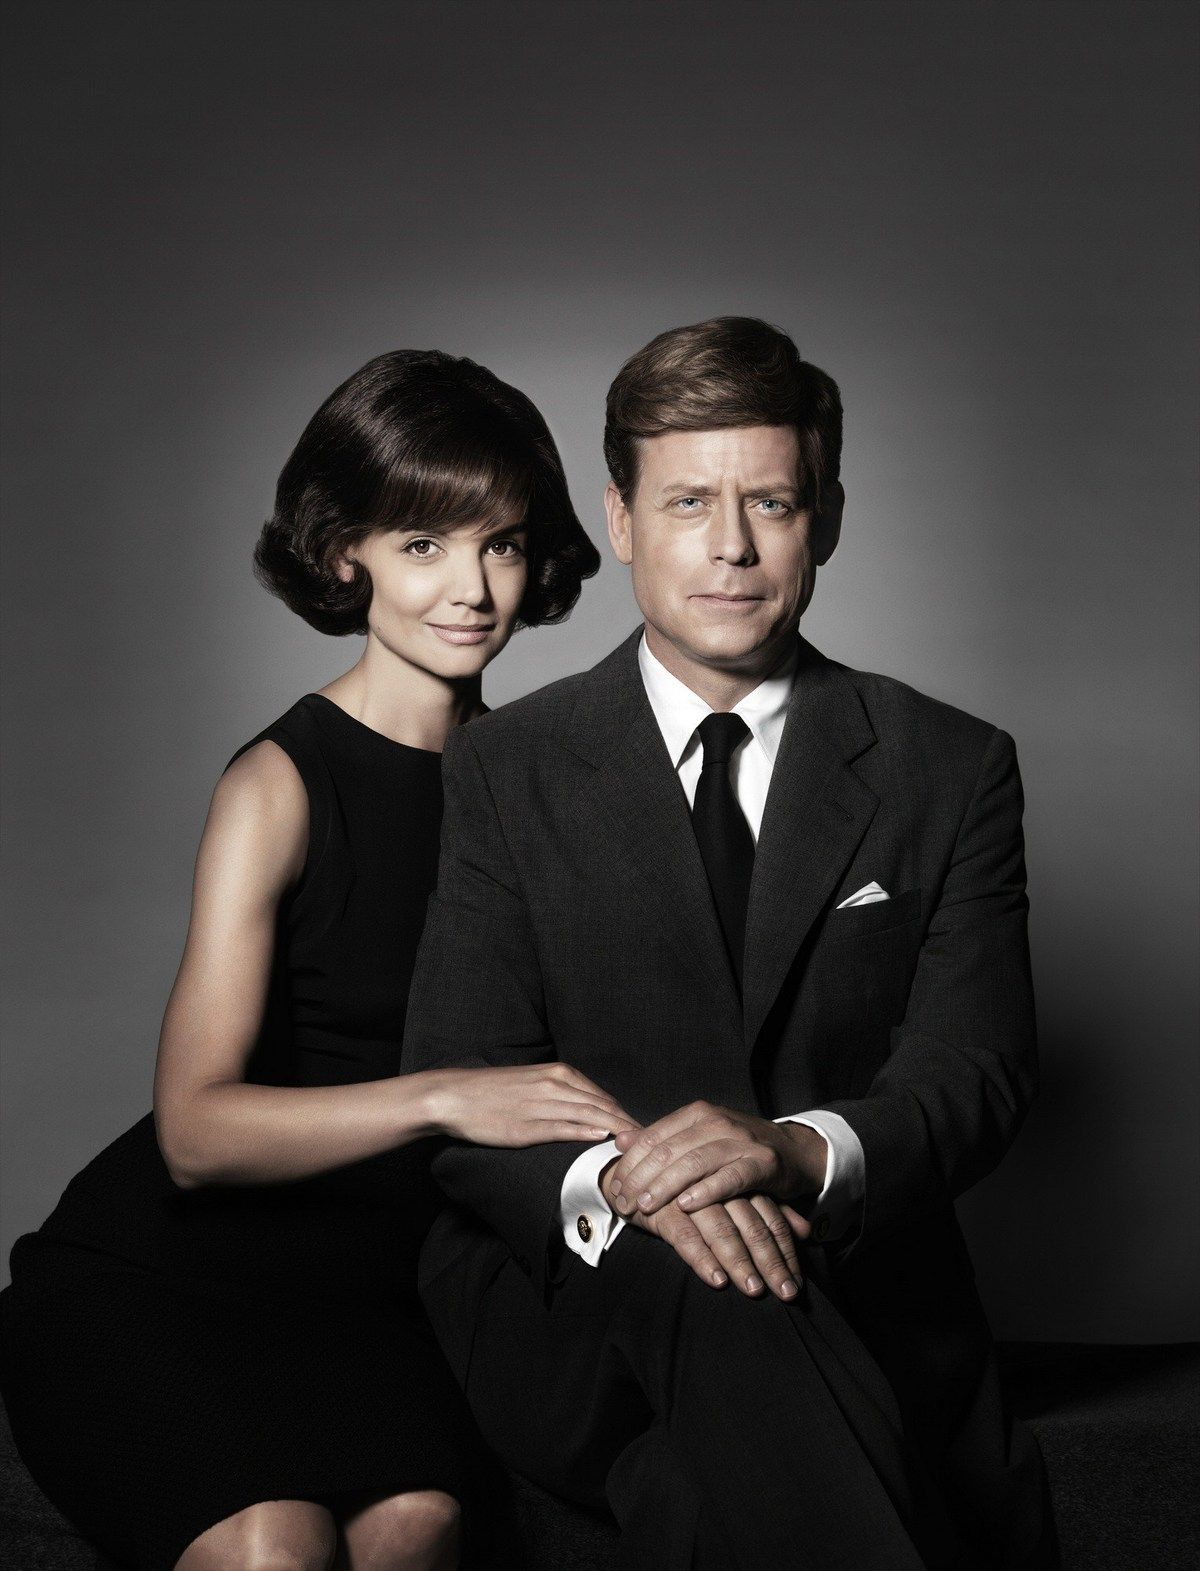 778a7c527b012 Katie Holmes and Greg Kinnear in The Kennedys by Jon Cassar ...